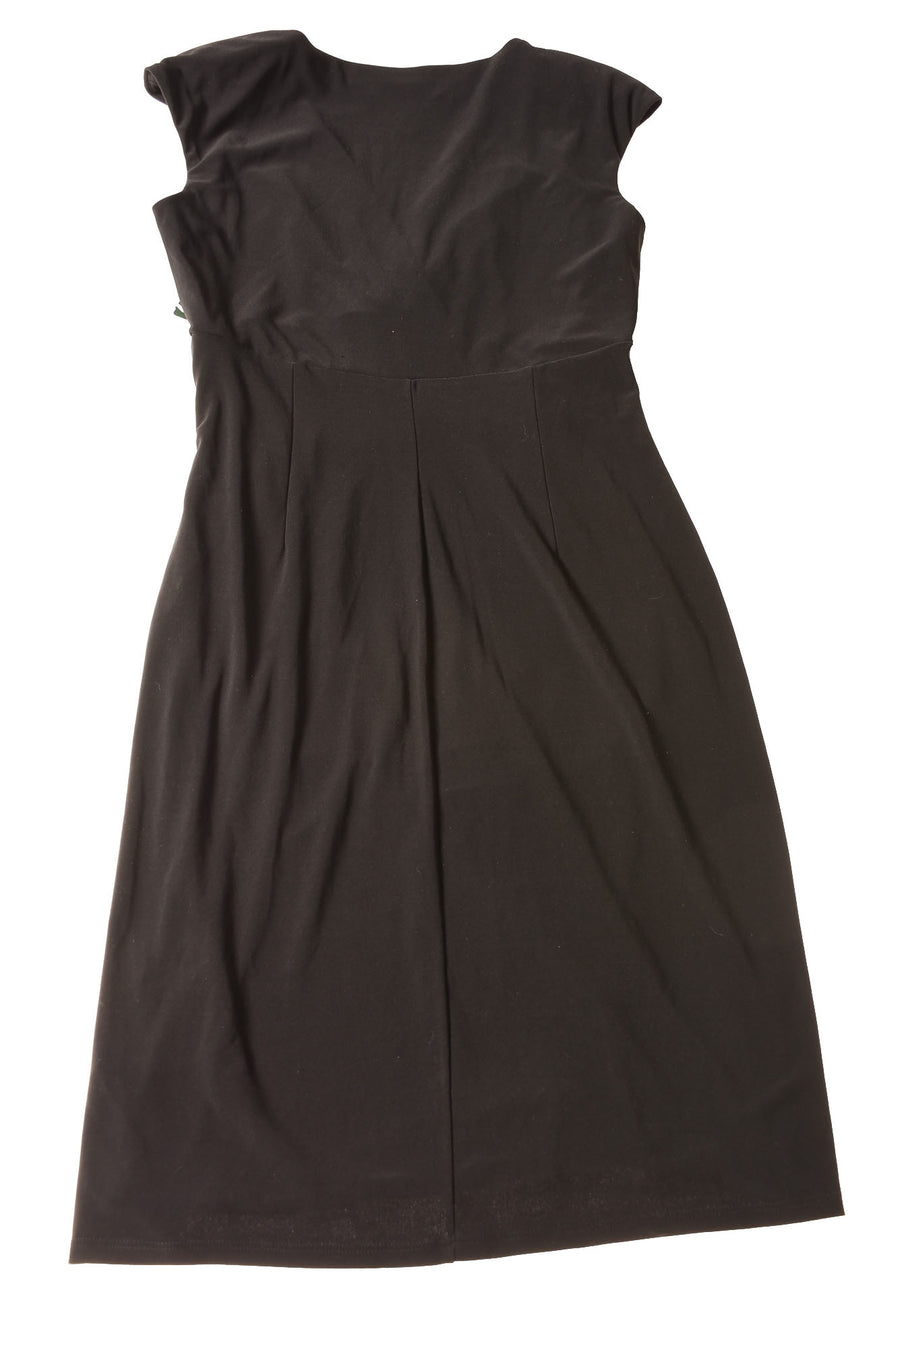 NEW Ralph Lauren Women's Dress 6 Black